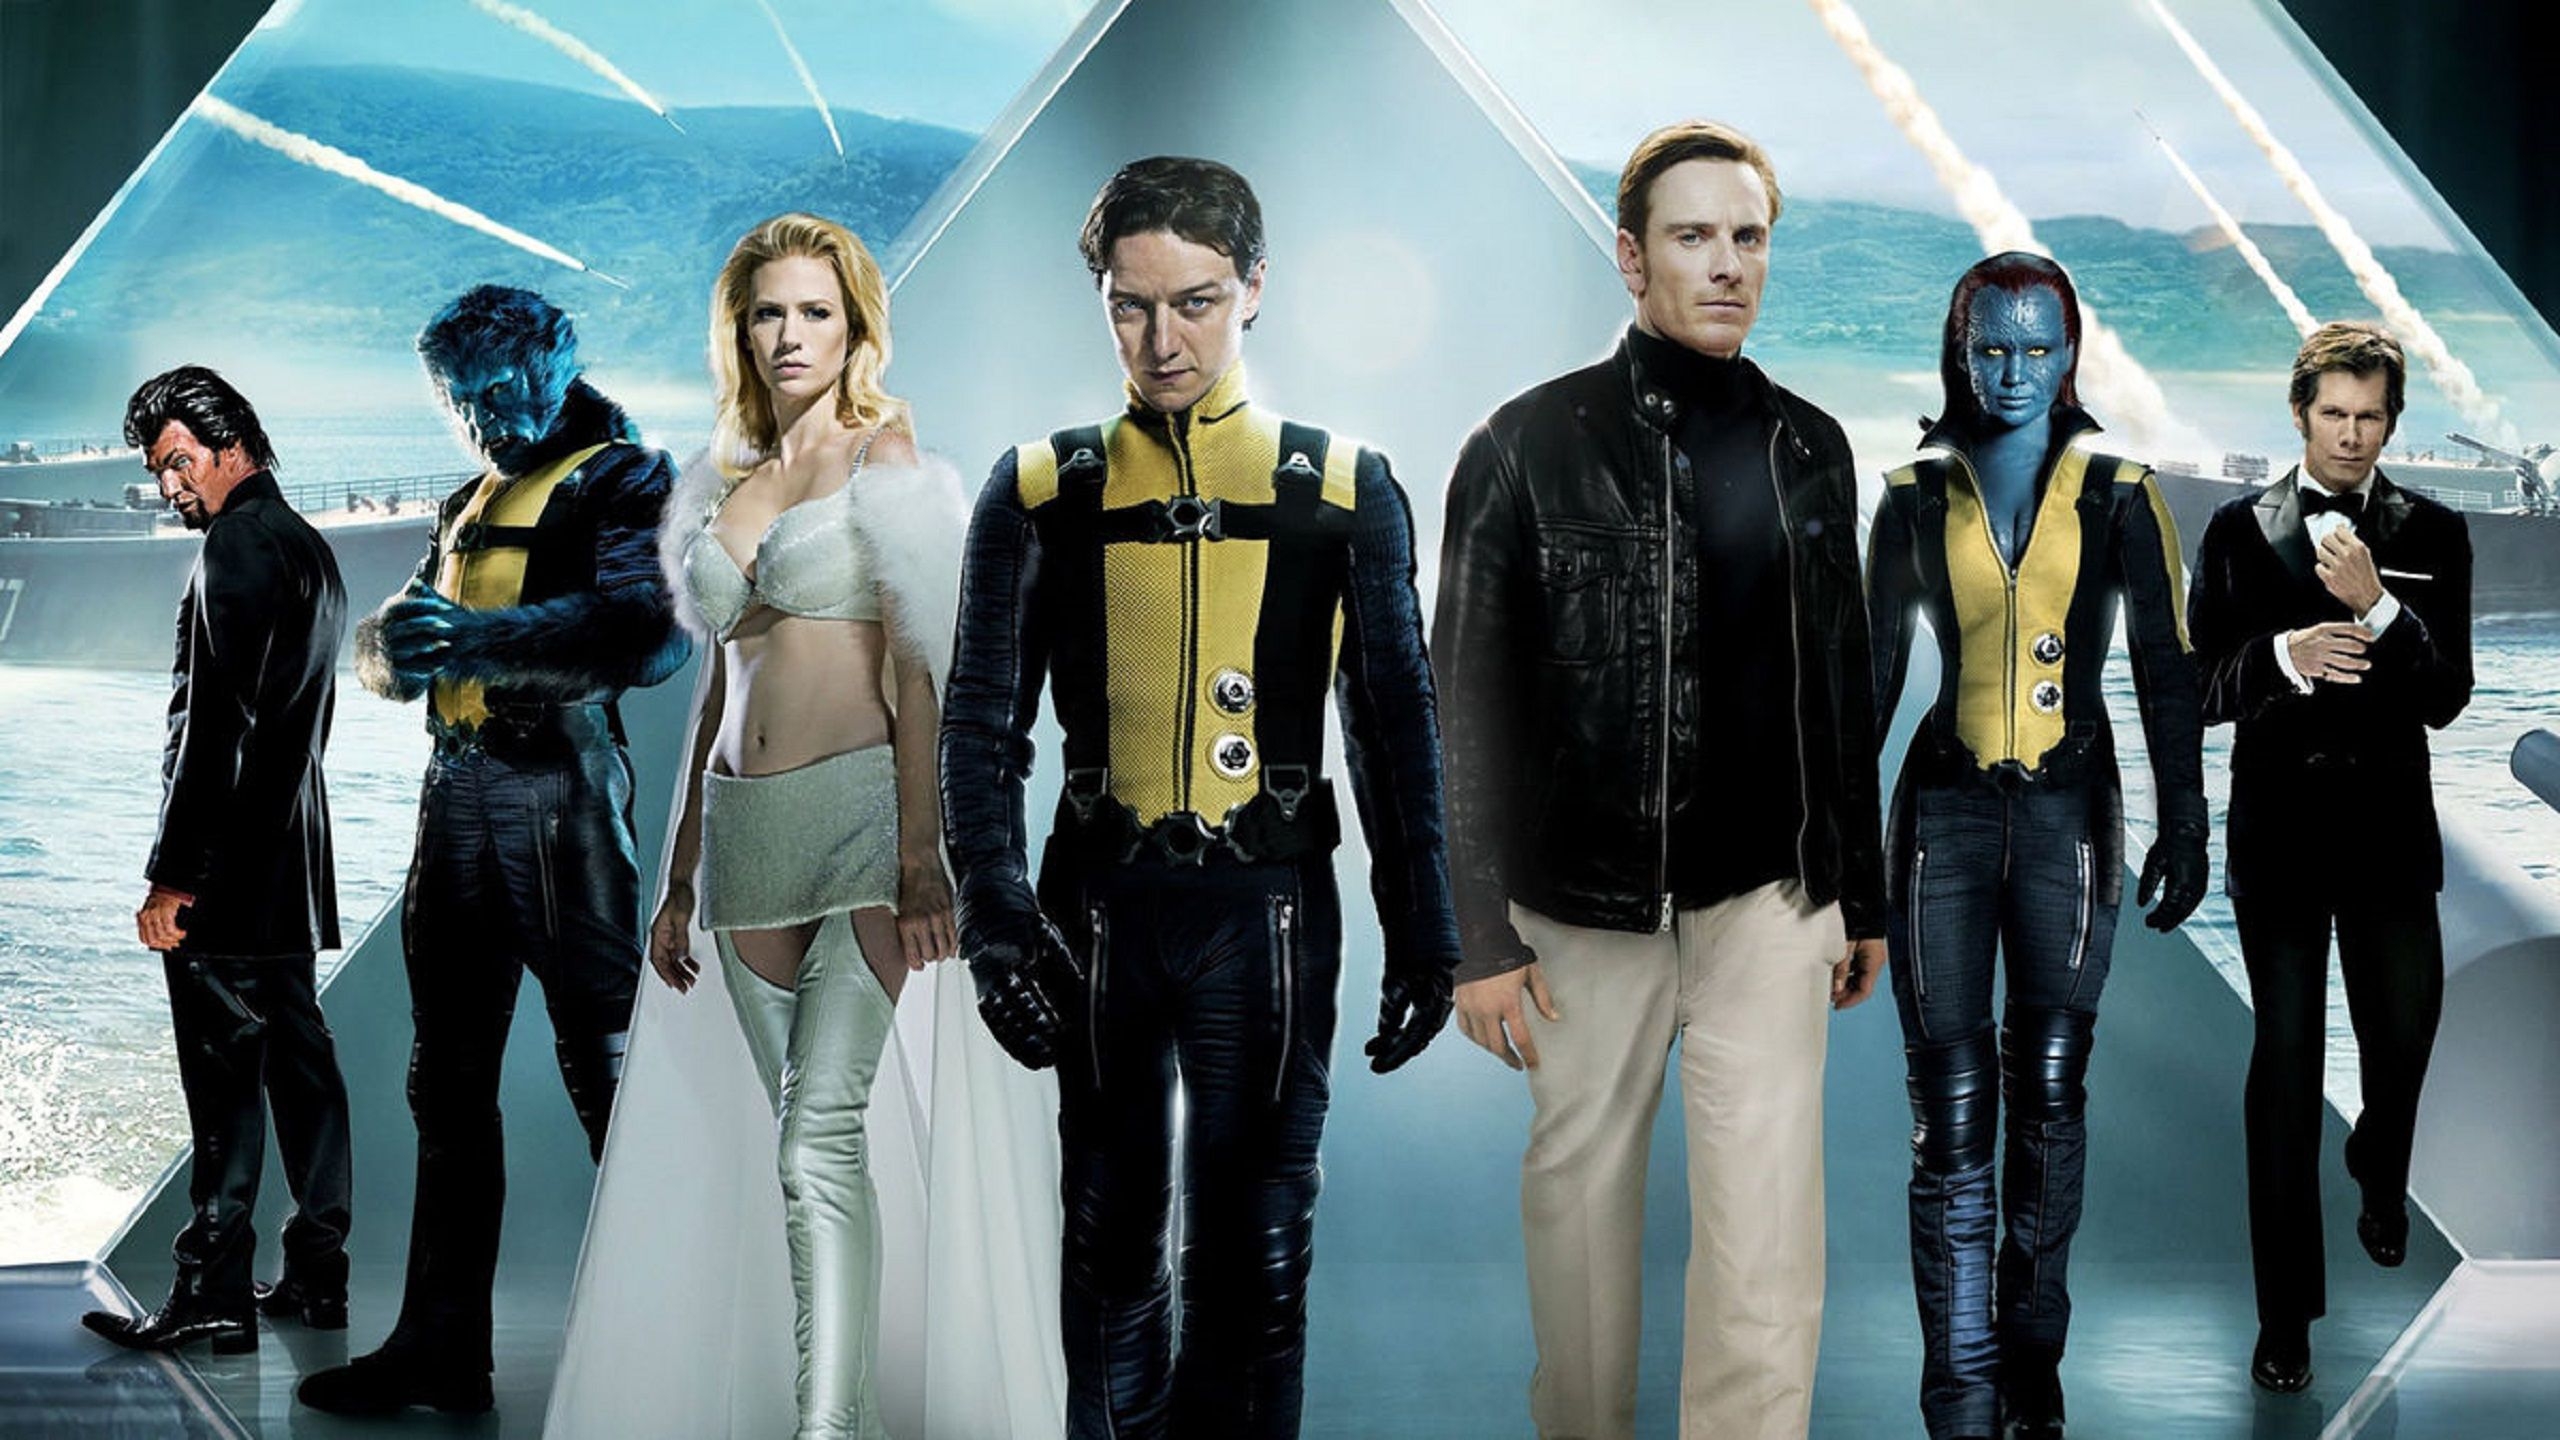 X-Men 5 - L'Inizio - First Class (2011) characters wallpaper